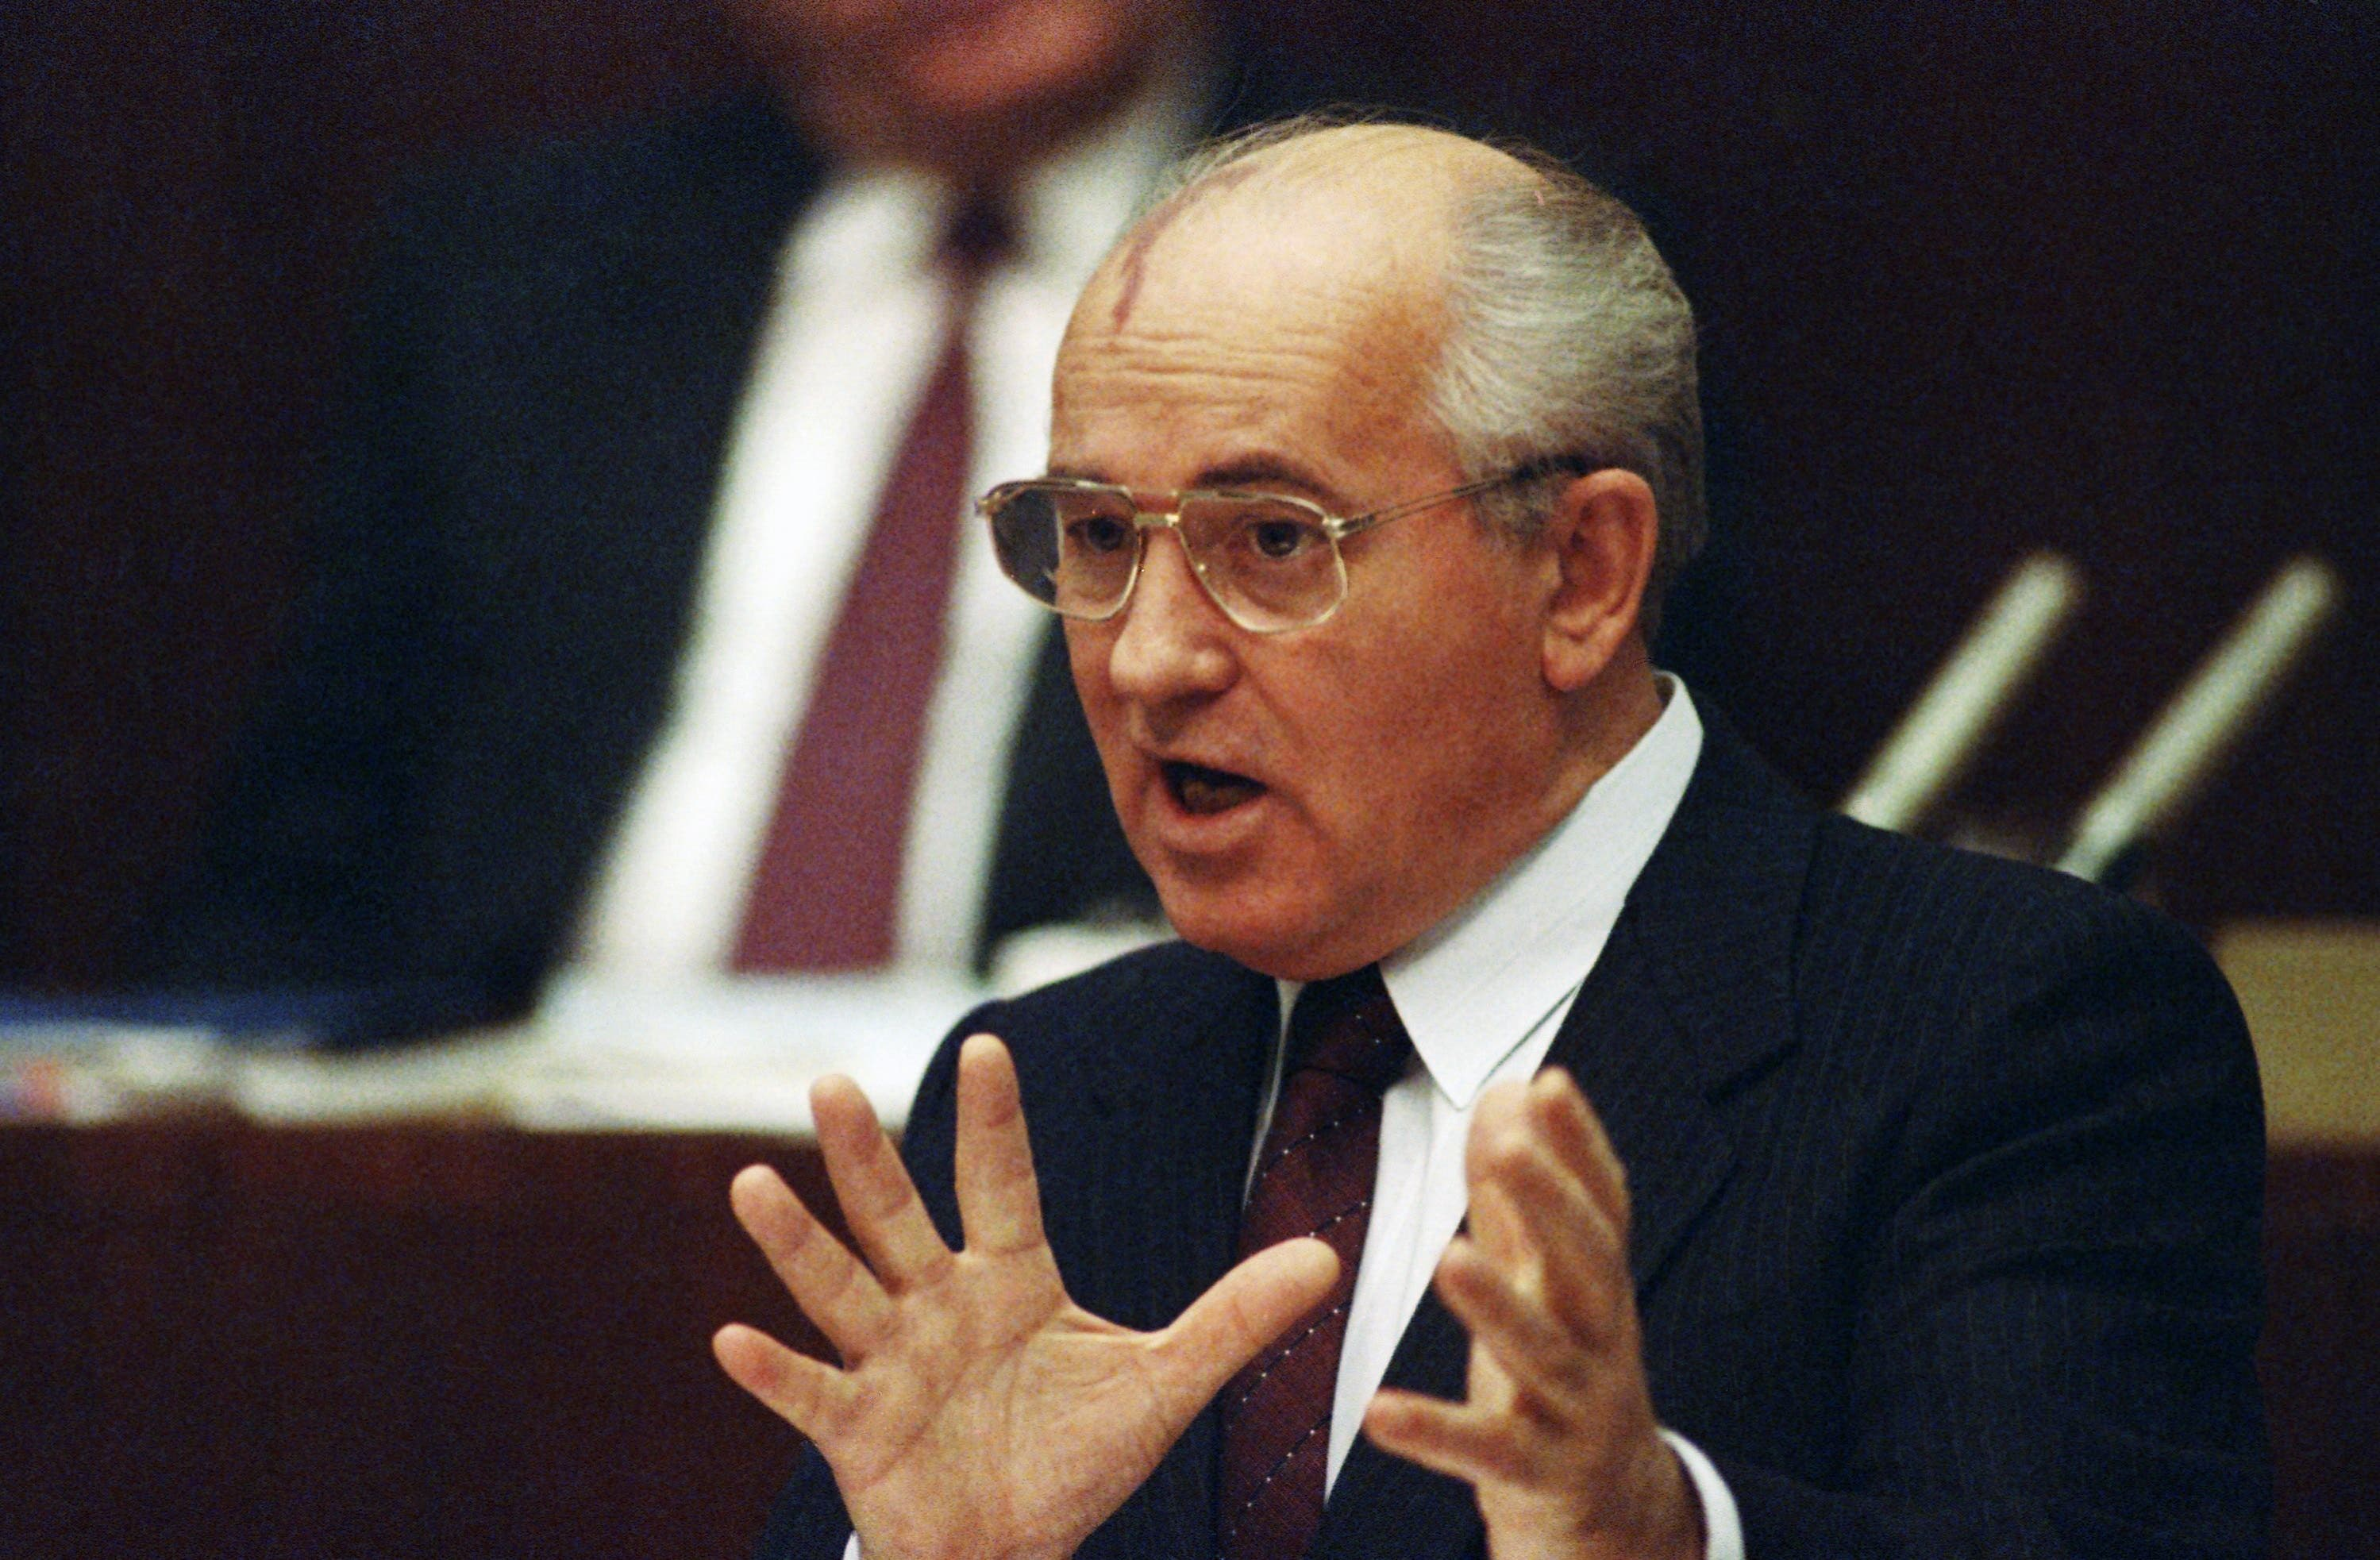 Soviet President Mikhail S. Gorbachev went before the Supreme Soviet parliament in Moscow, Nov. 26, 1990 to discuss his recent trip to the CSCE summit in Paris. Answering questions from lawmakers, he warned Saddam Hussein that Iraq cannot break the unity of those nations allied against Baghdad's aggression in the Gulf. (File photo: AP)